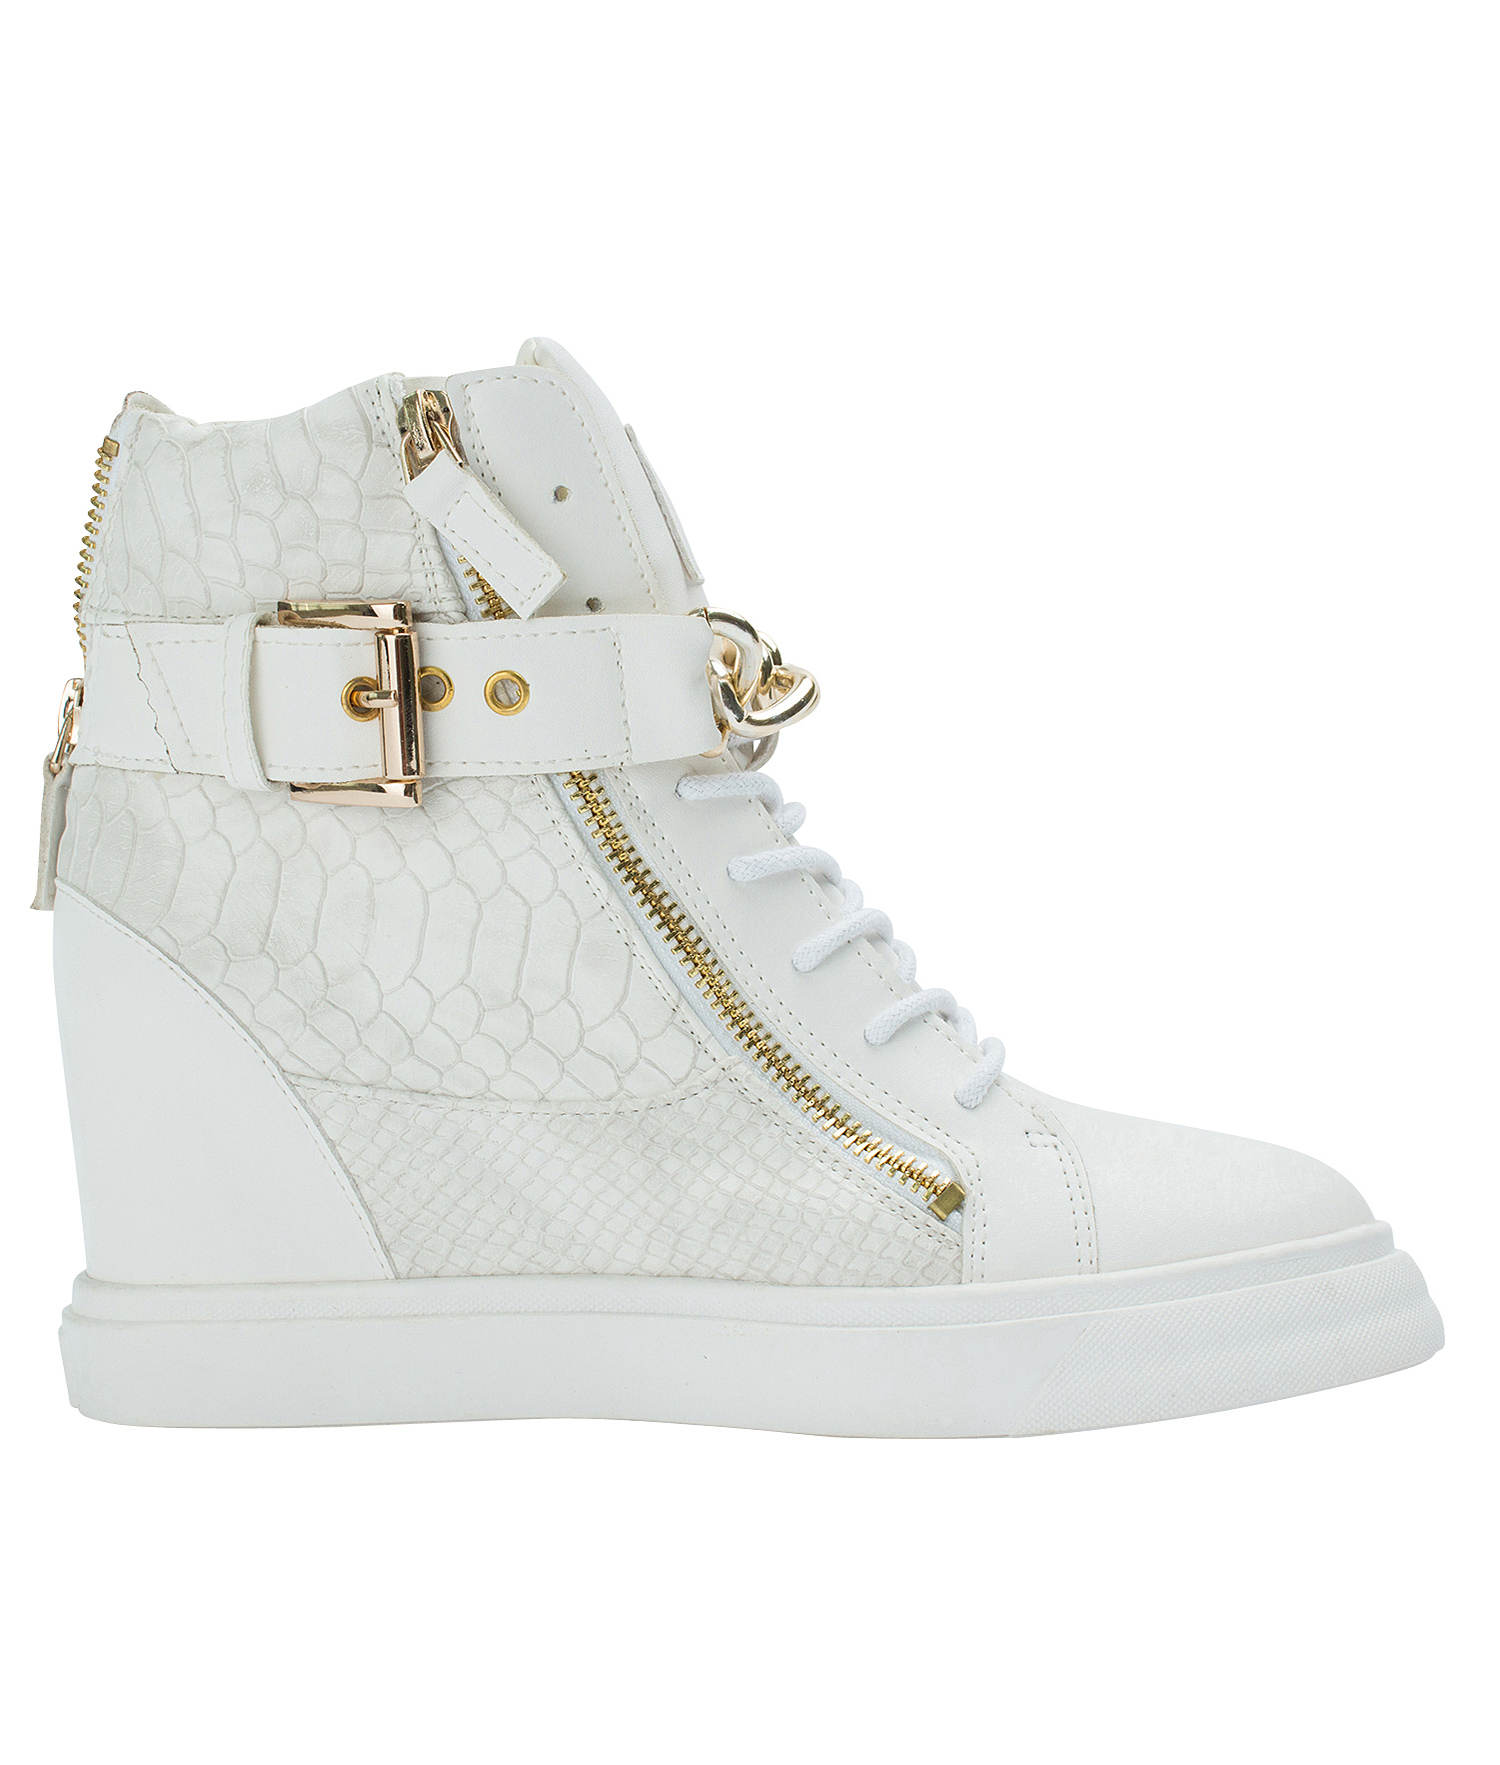 AnnaKastle Womens Gold Chain High Top Wedge Sneakers White 1ee3c1b81